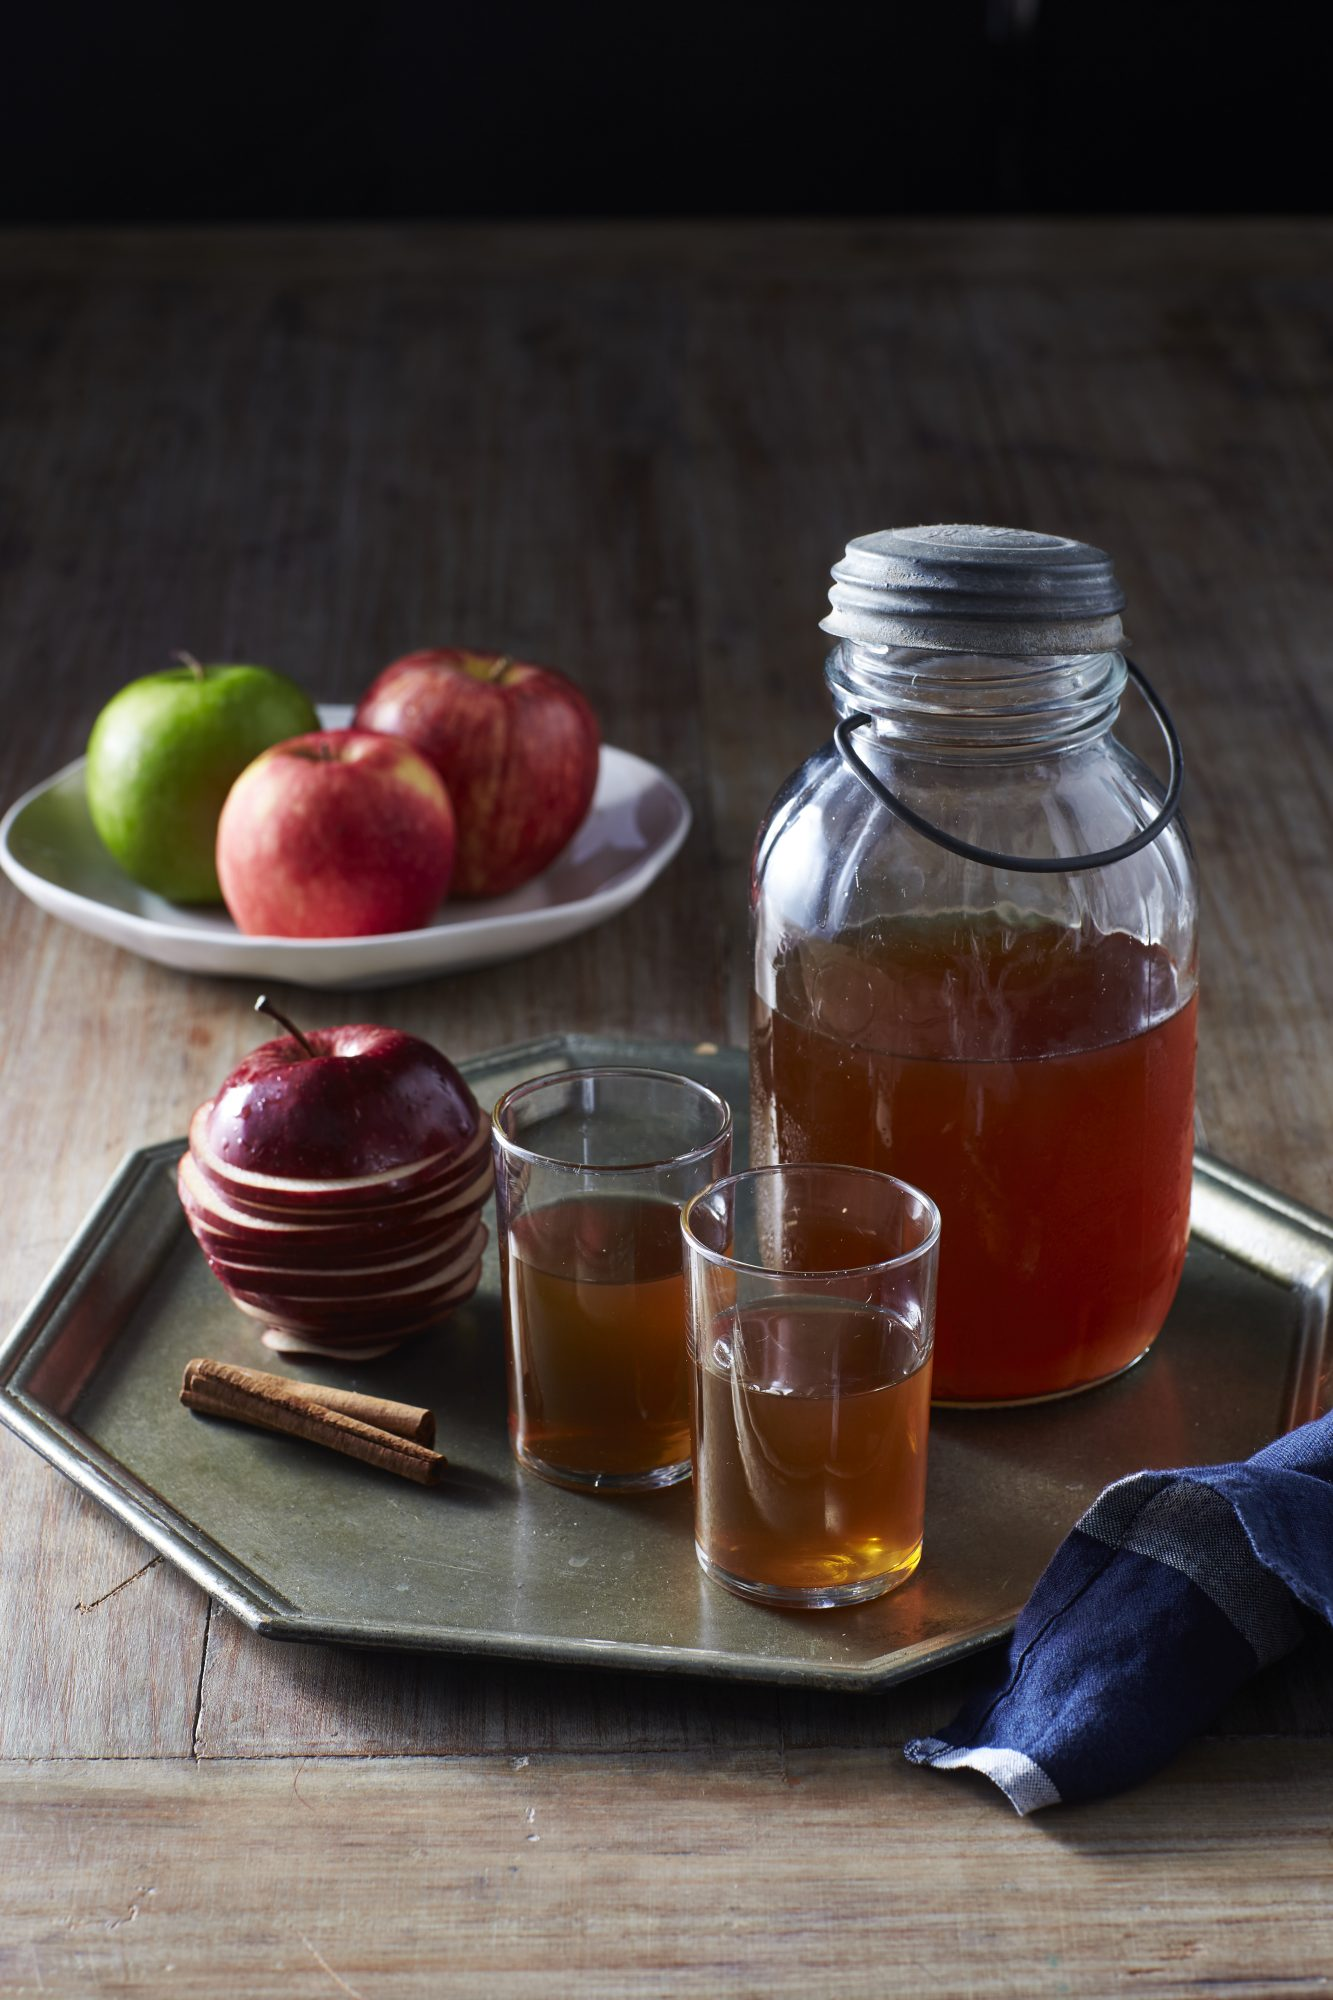 mr-apple-pie-moonshine-image-2